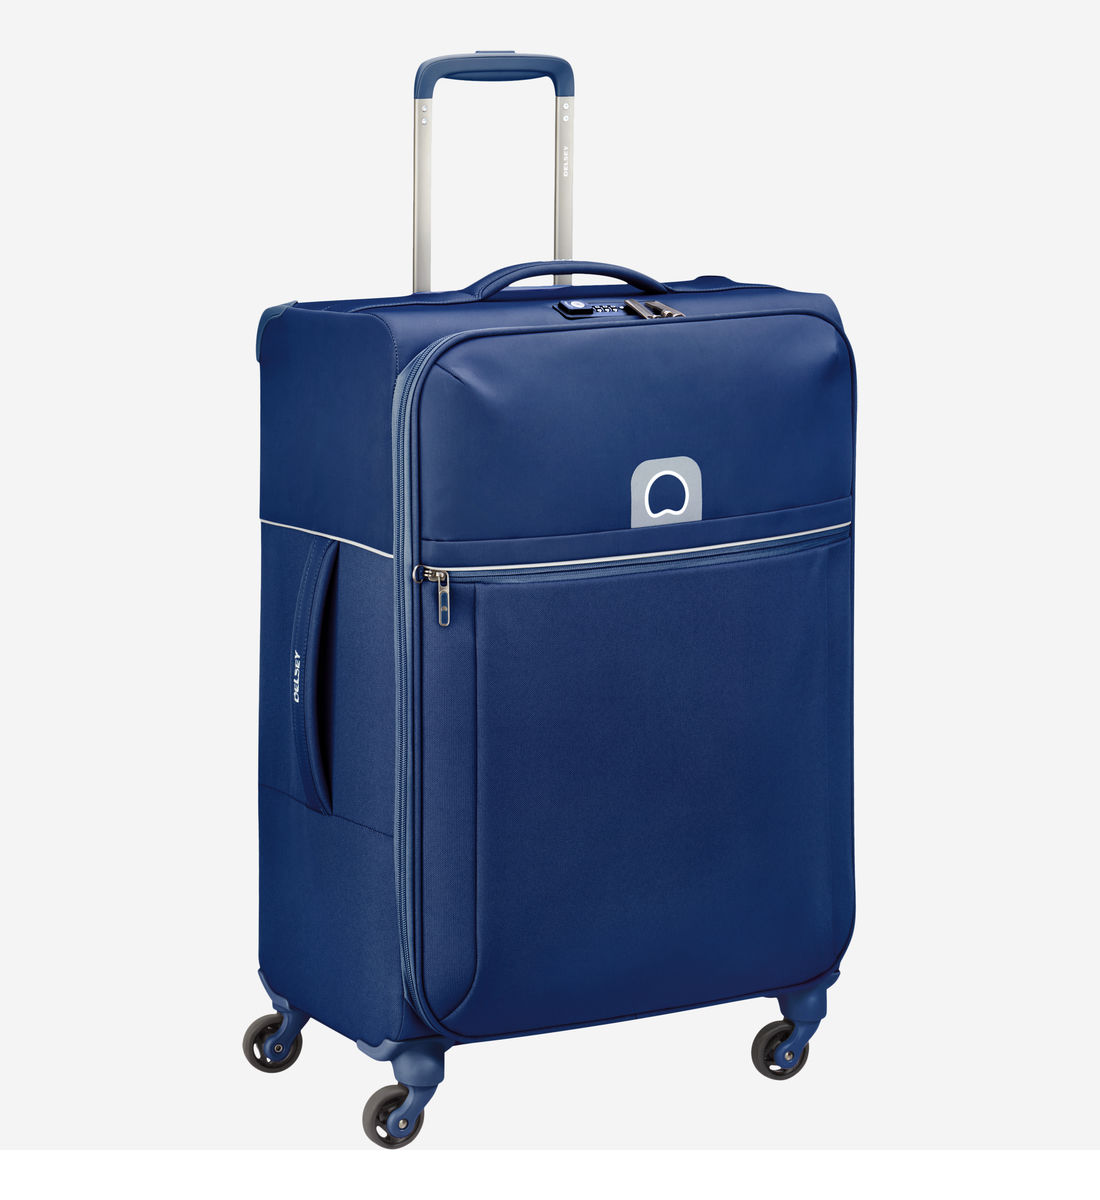 Delsey Valise Souple Brochant Cm Trolley 4r 67 Bleu 9IYEeWD2H